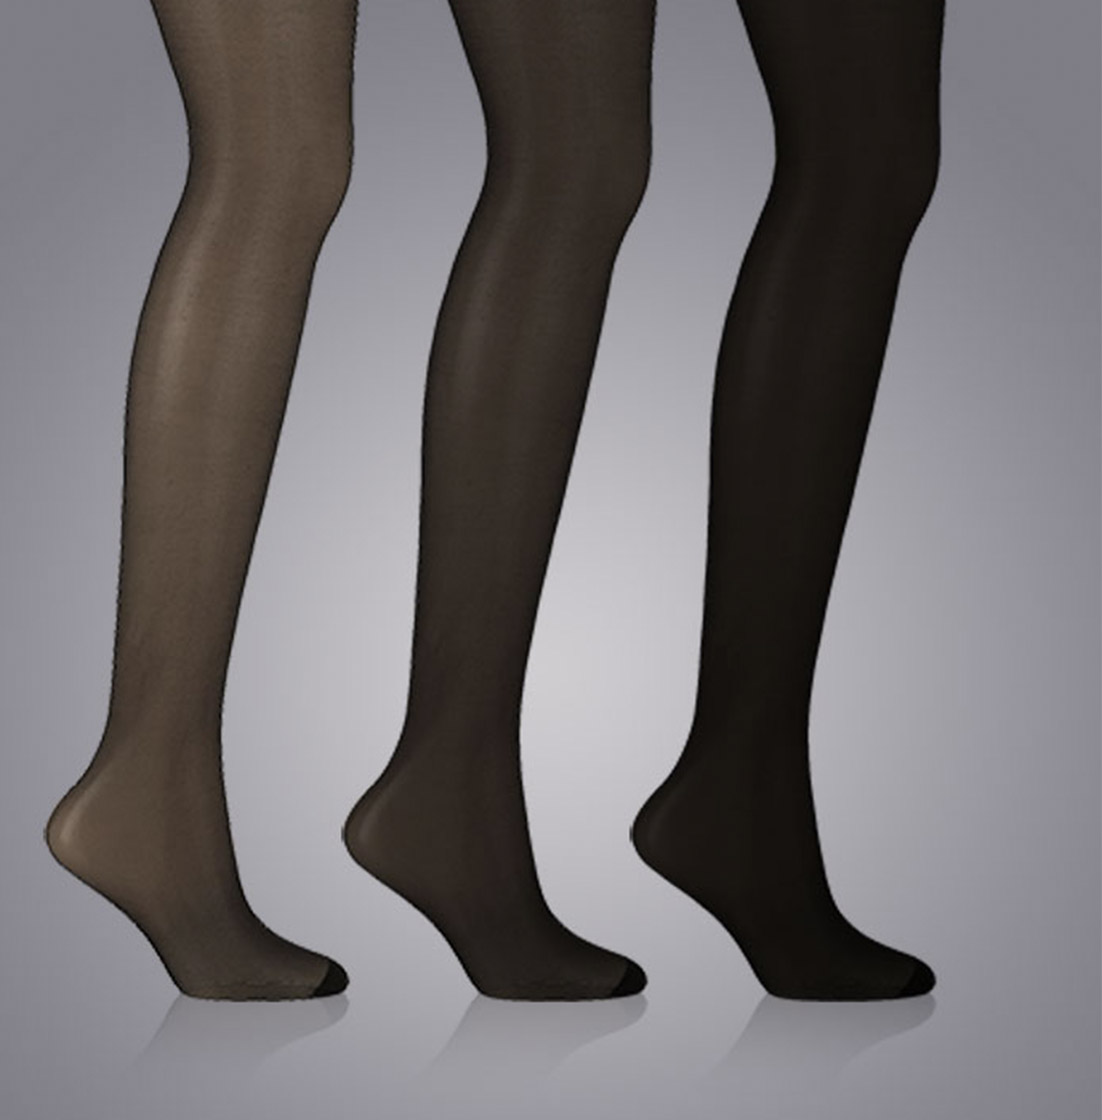 28fa50503f9 Denier. Denier describes the thickness and coverage of hosiery.